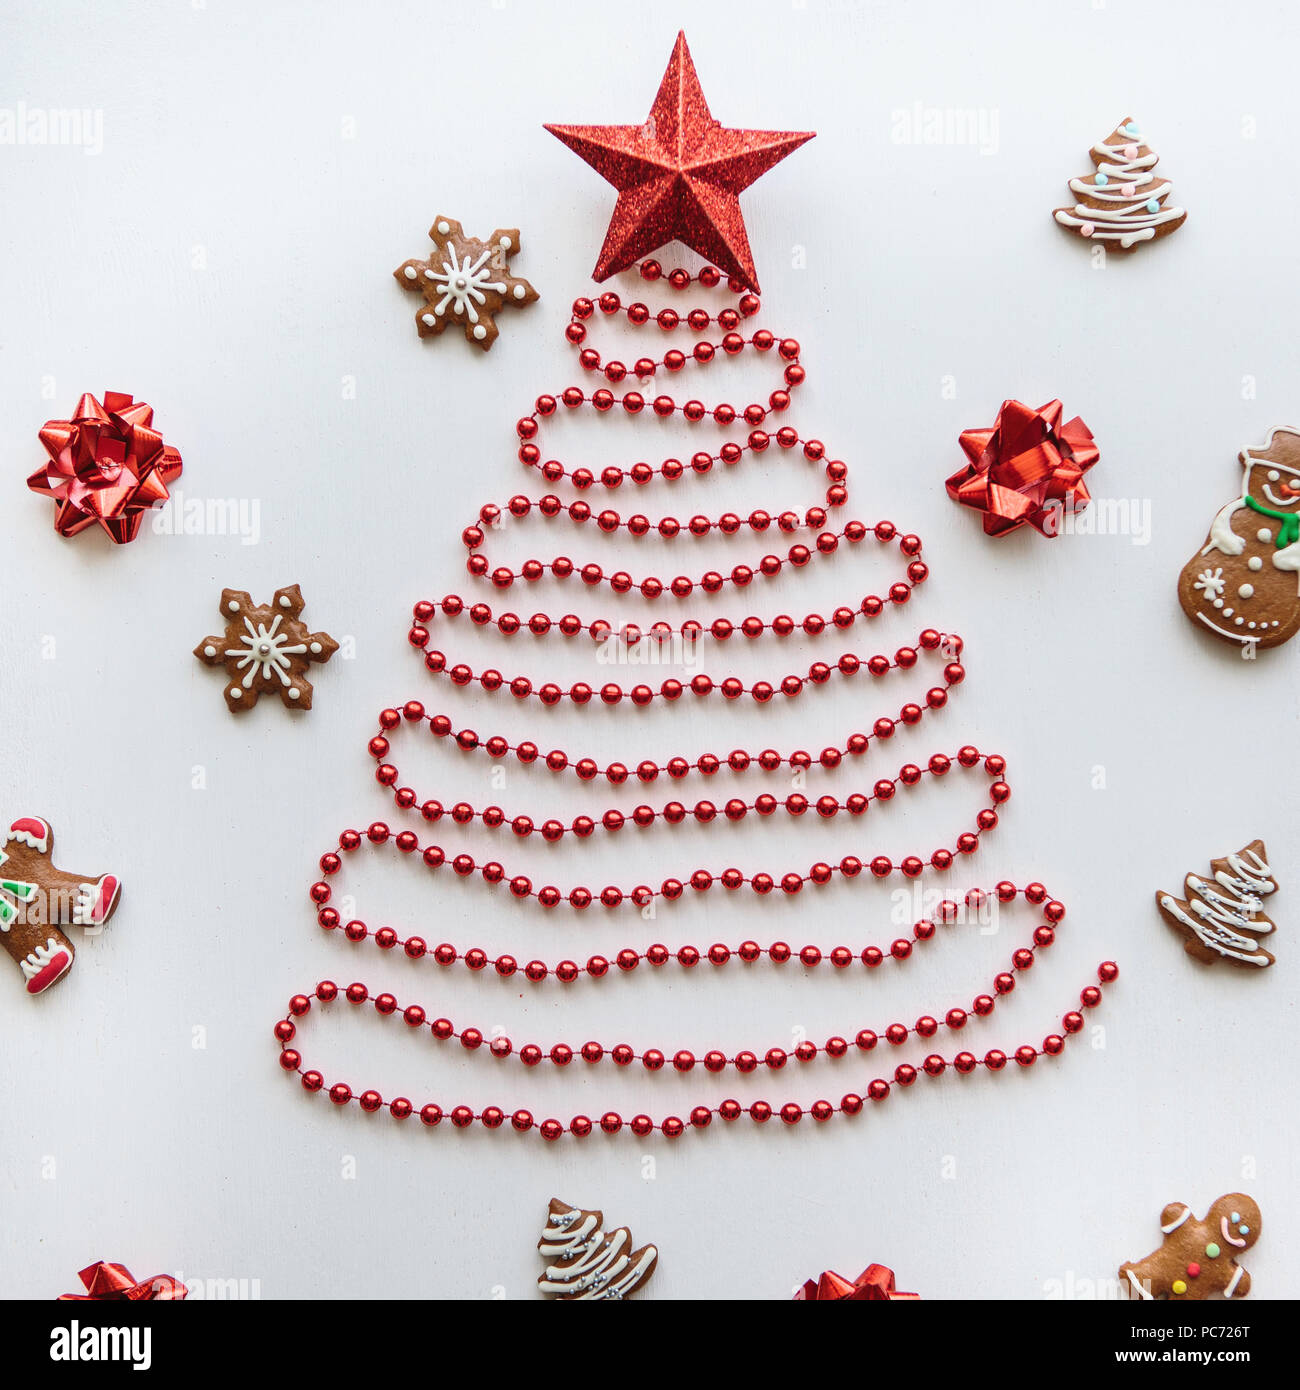 creative idea for christmas or new year theme a christmas tree made of beads and a star on top next to it lie the traditional gingerbread